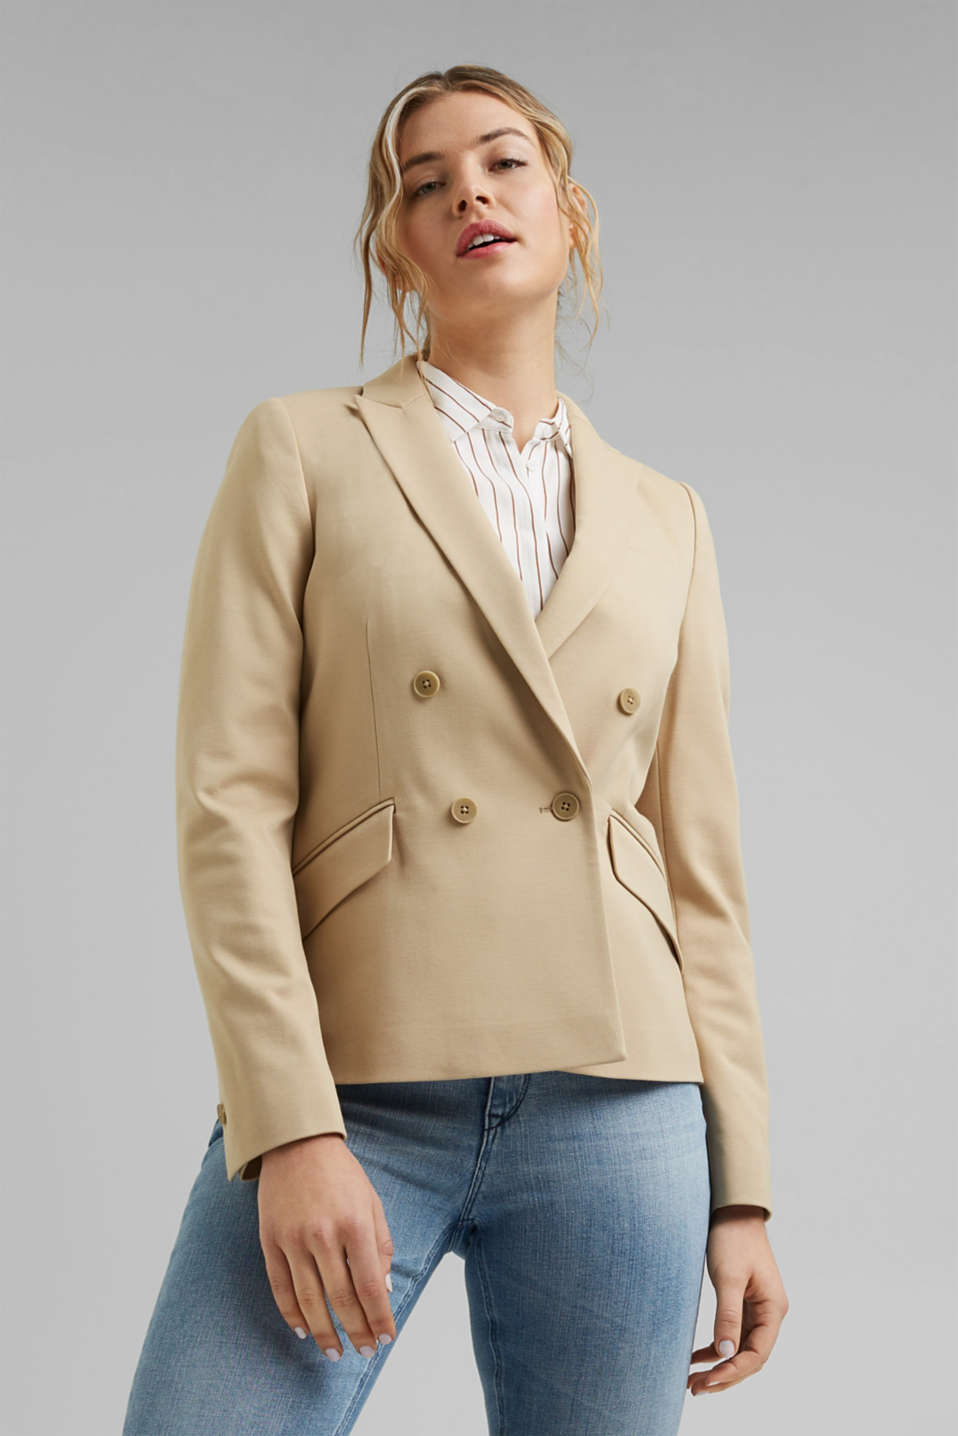 Esprit - Double-breasted jersey blazer